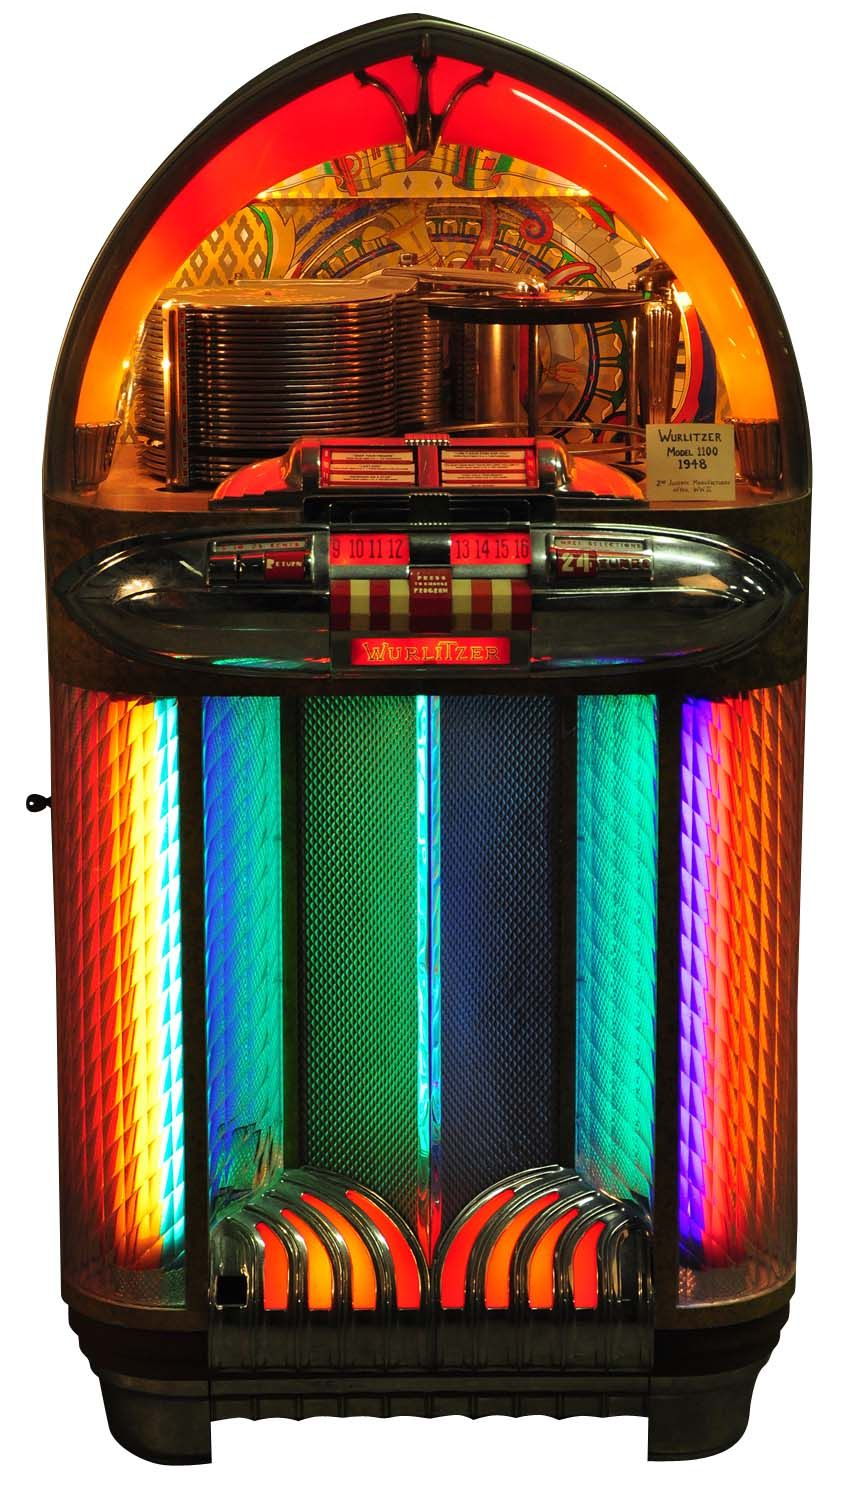 Vintage Wurlitzer Jukebox Wurlitzer model 1100 jukebox | Jukeboxes